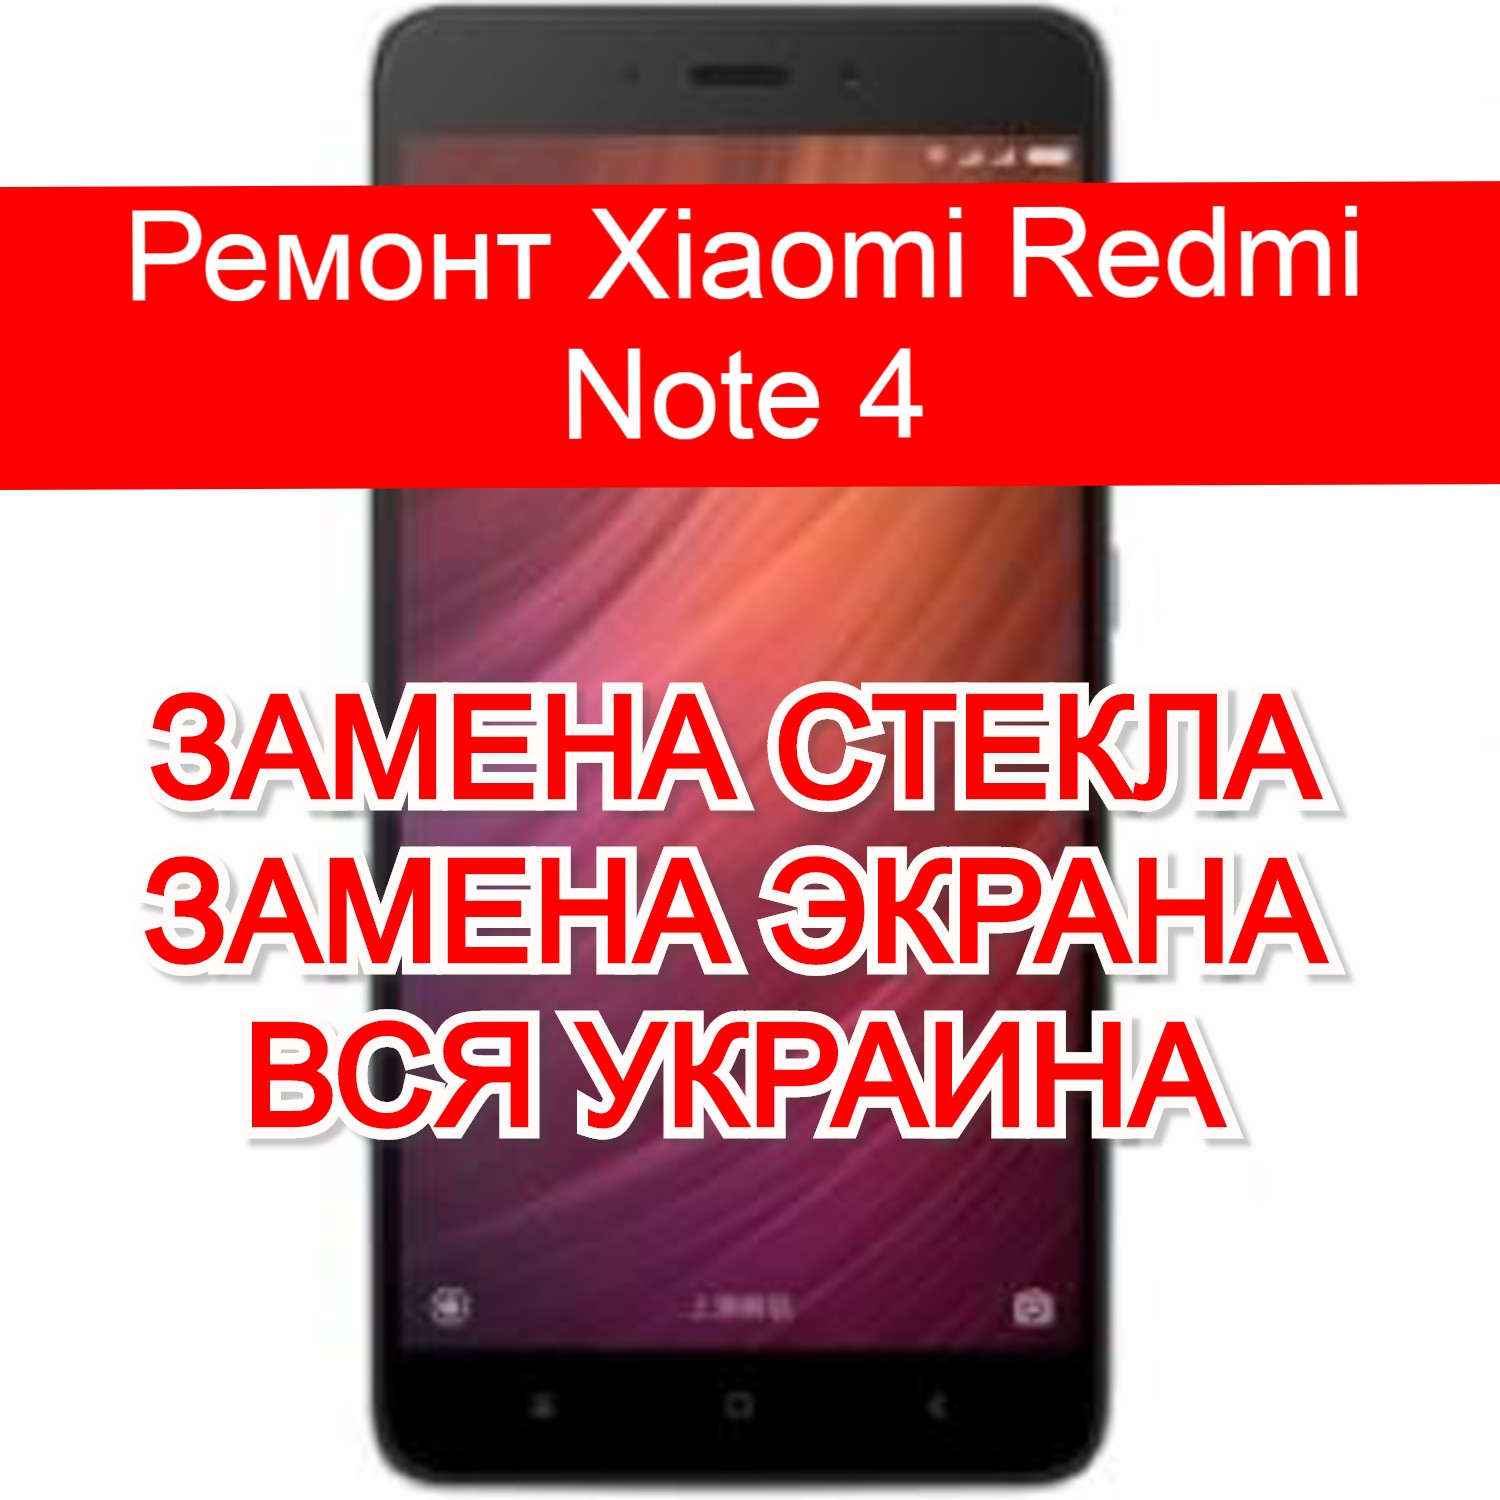 ремонт Xiaomi Redmi Note 4 замена стекла и экрана